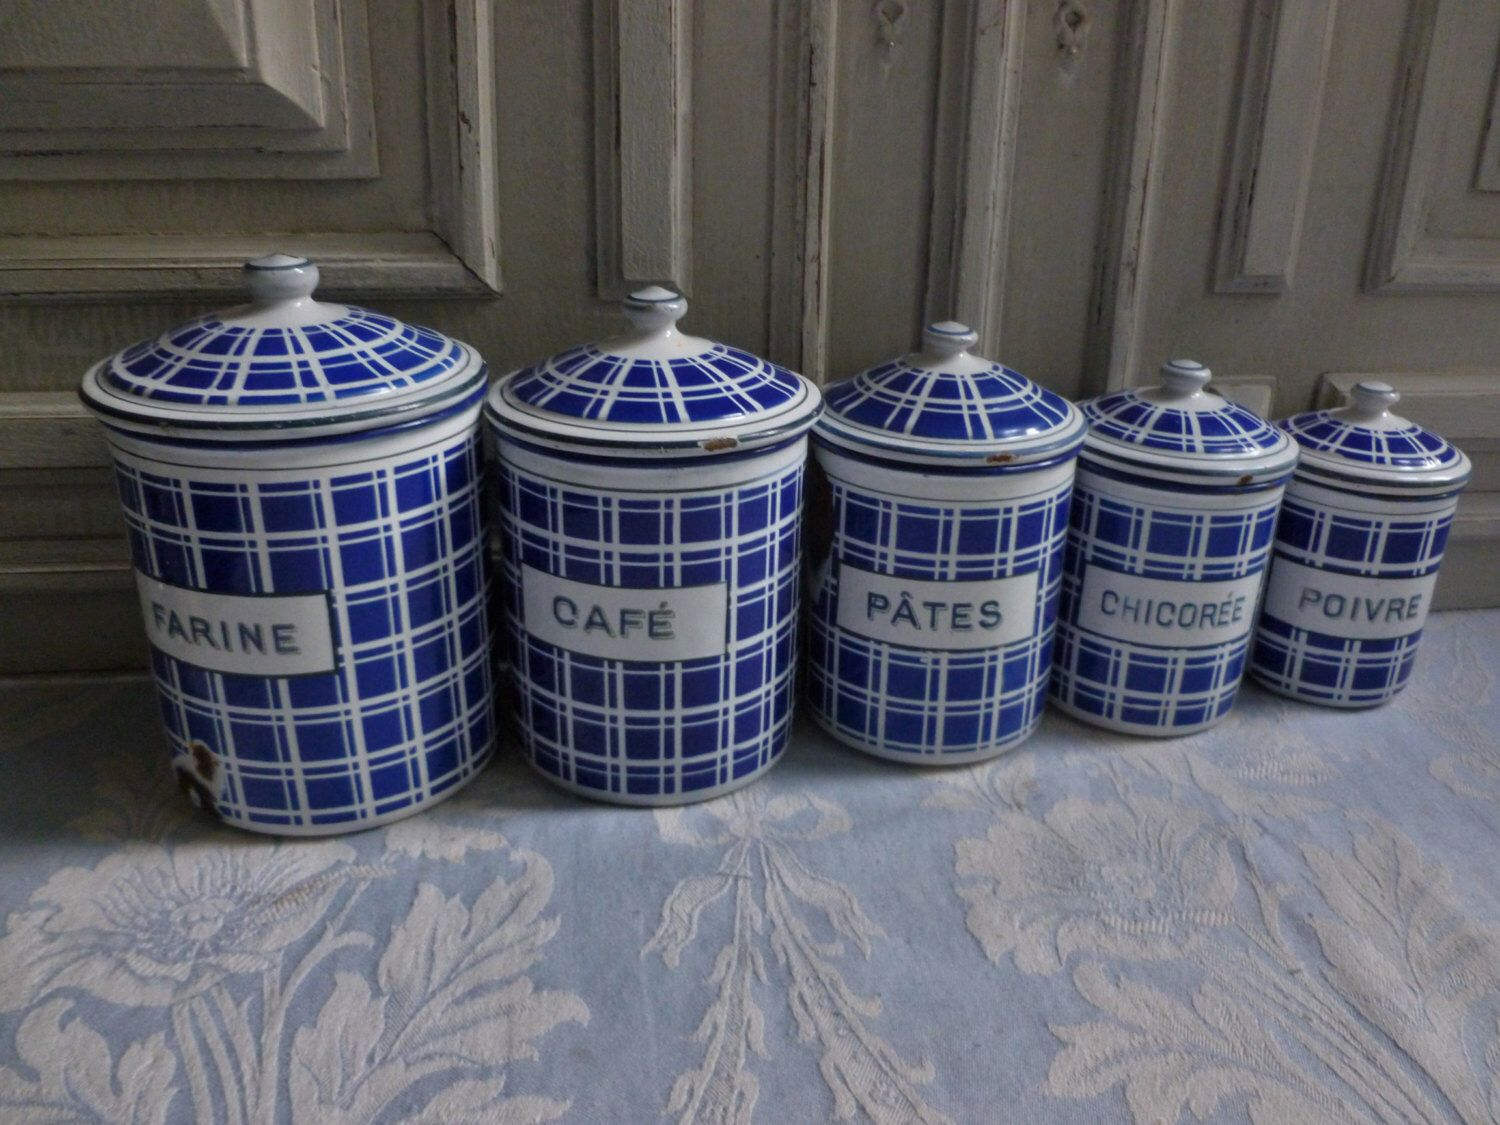 french enamel storage tins beautiful set of 5 vintage kitchen french enamel storage tins beautiful set of 5 vintage kitchen canisters blue and white chequered genuine collectable kitchenalia